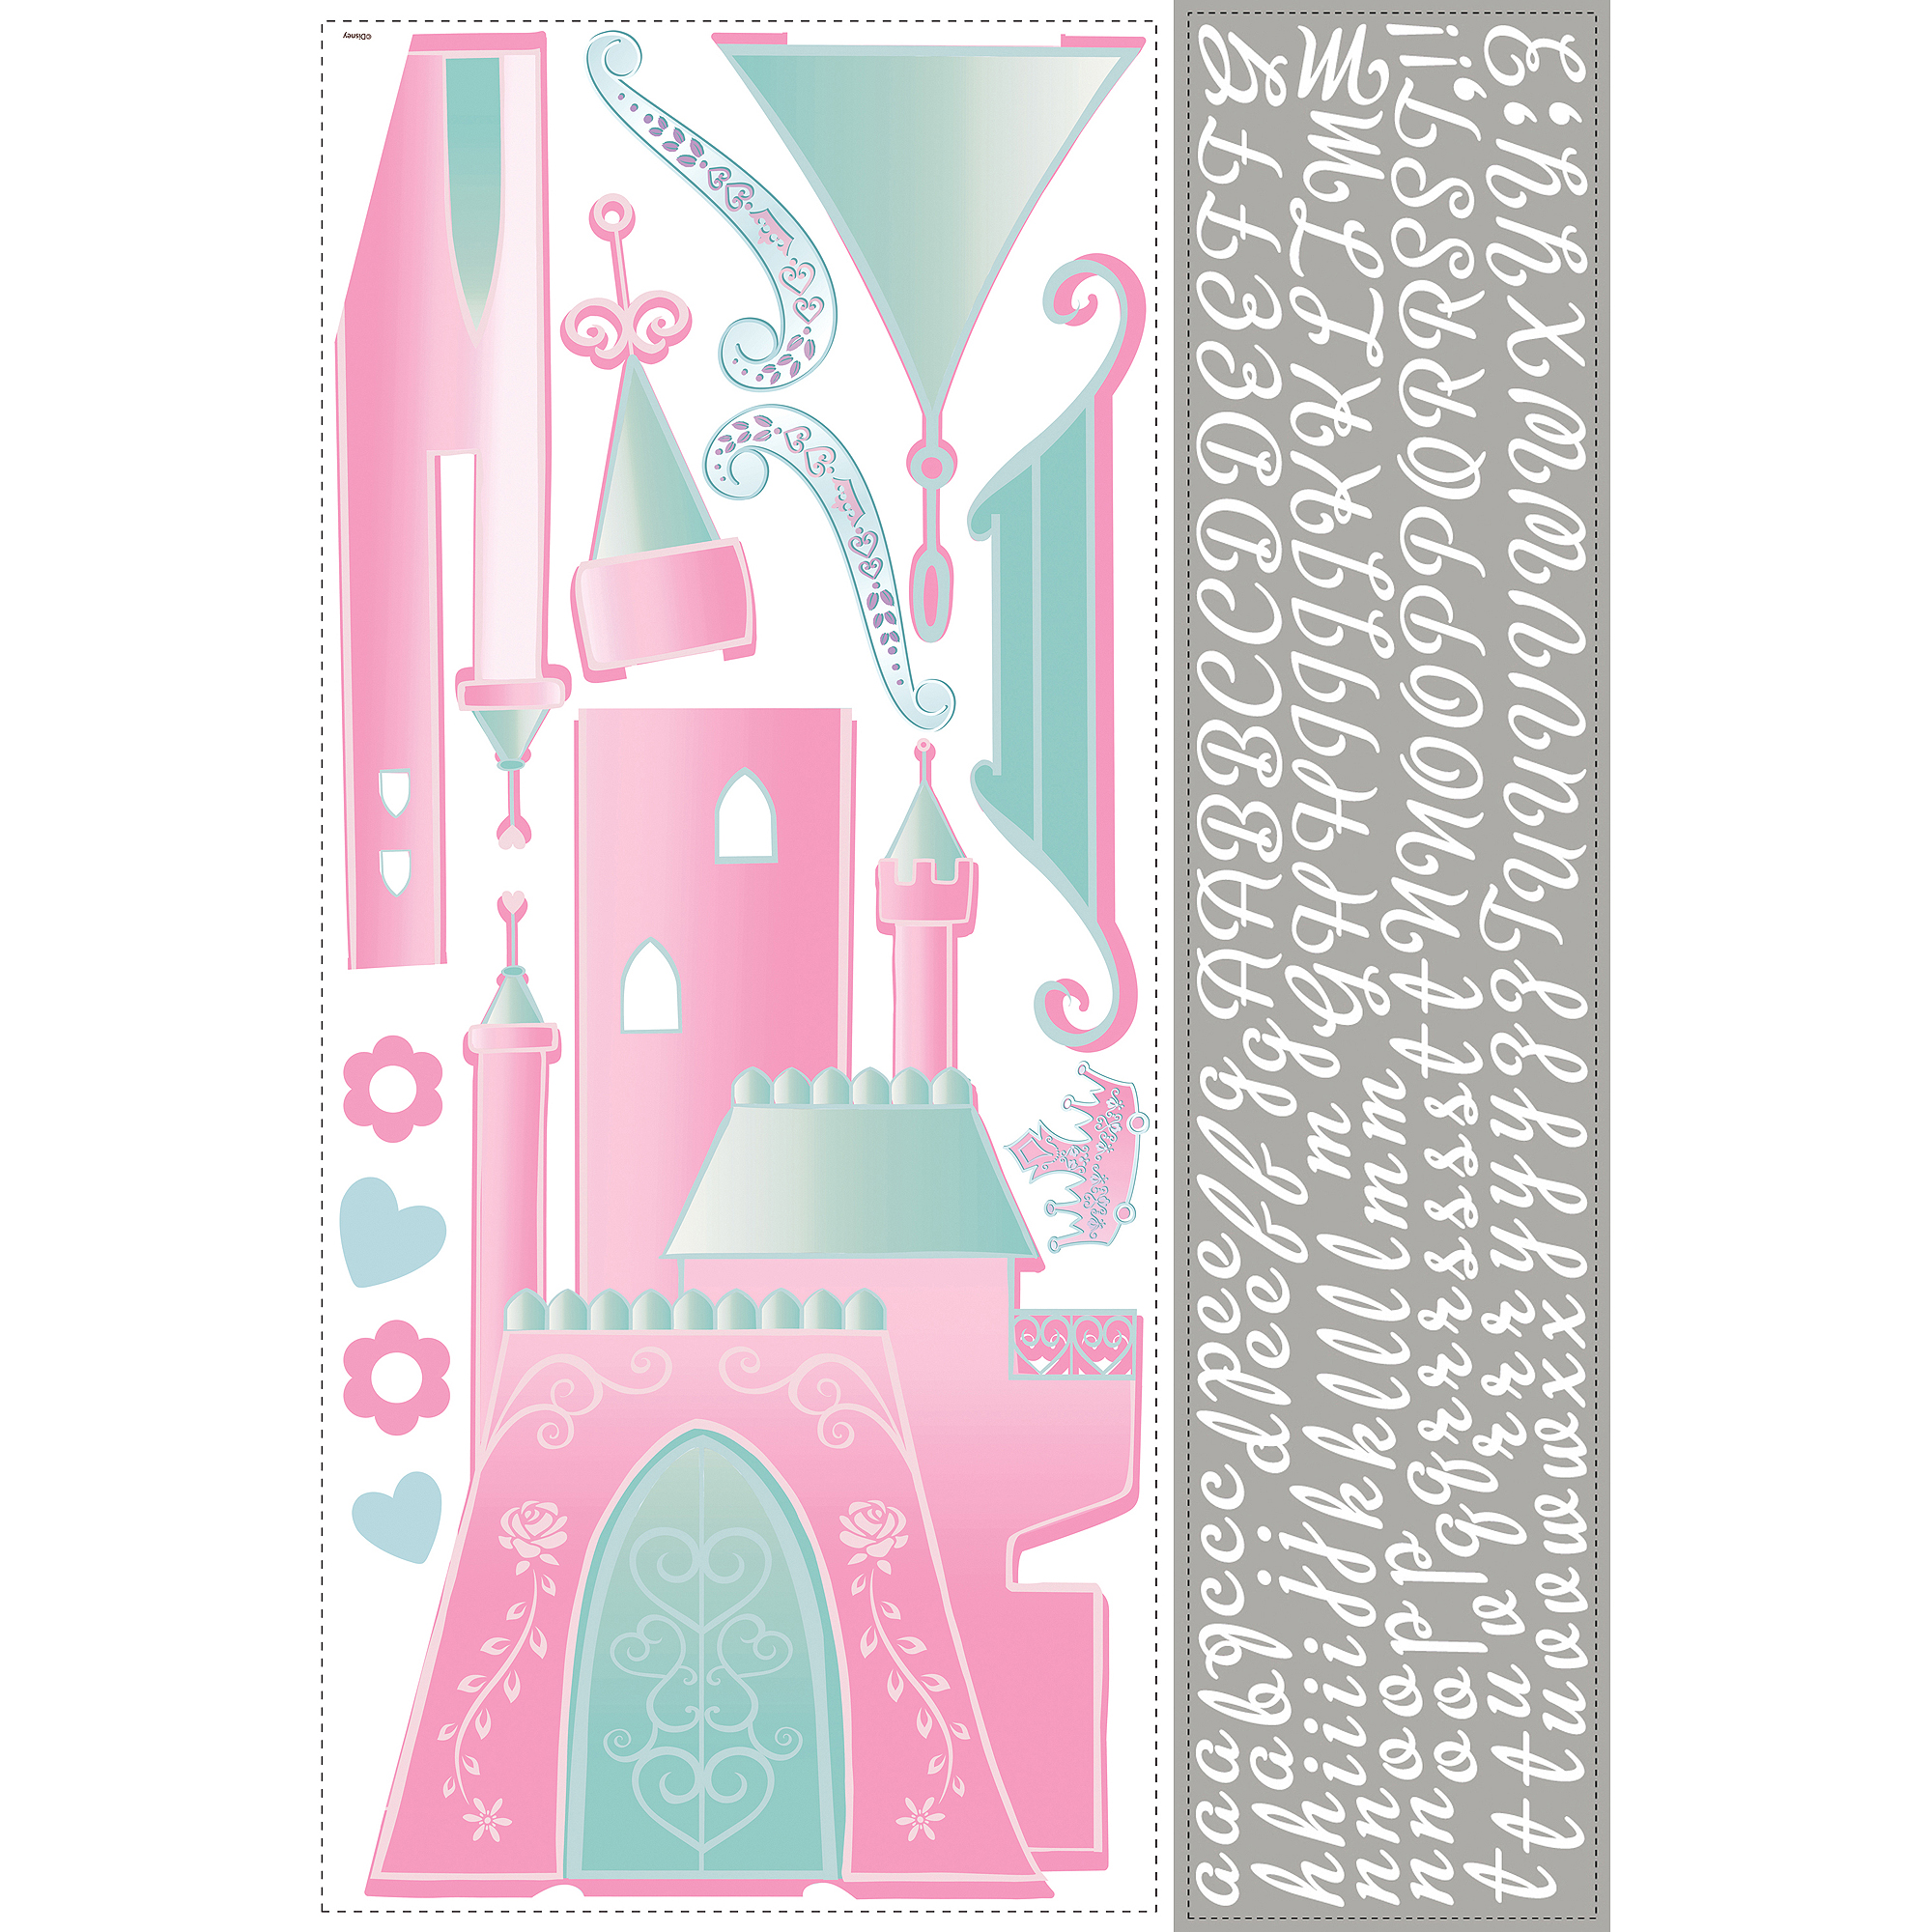 RoomMates Disney Princess Castle Peel-and-Stick Giant Wall Decal with Personalization